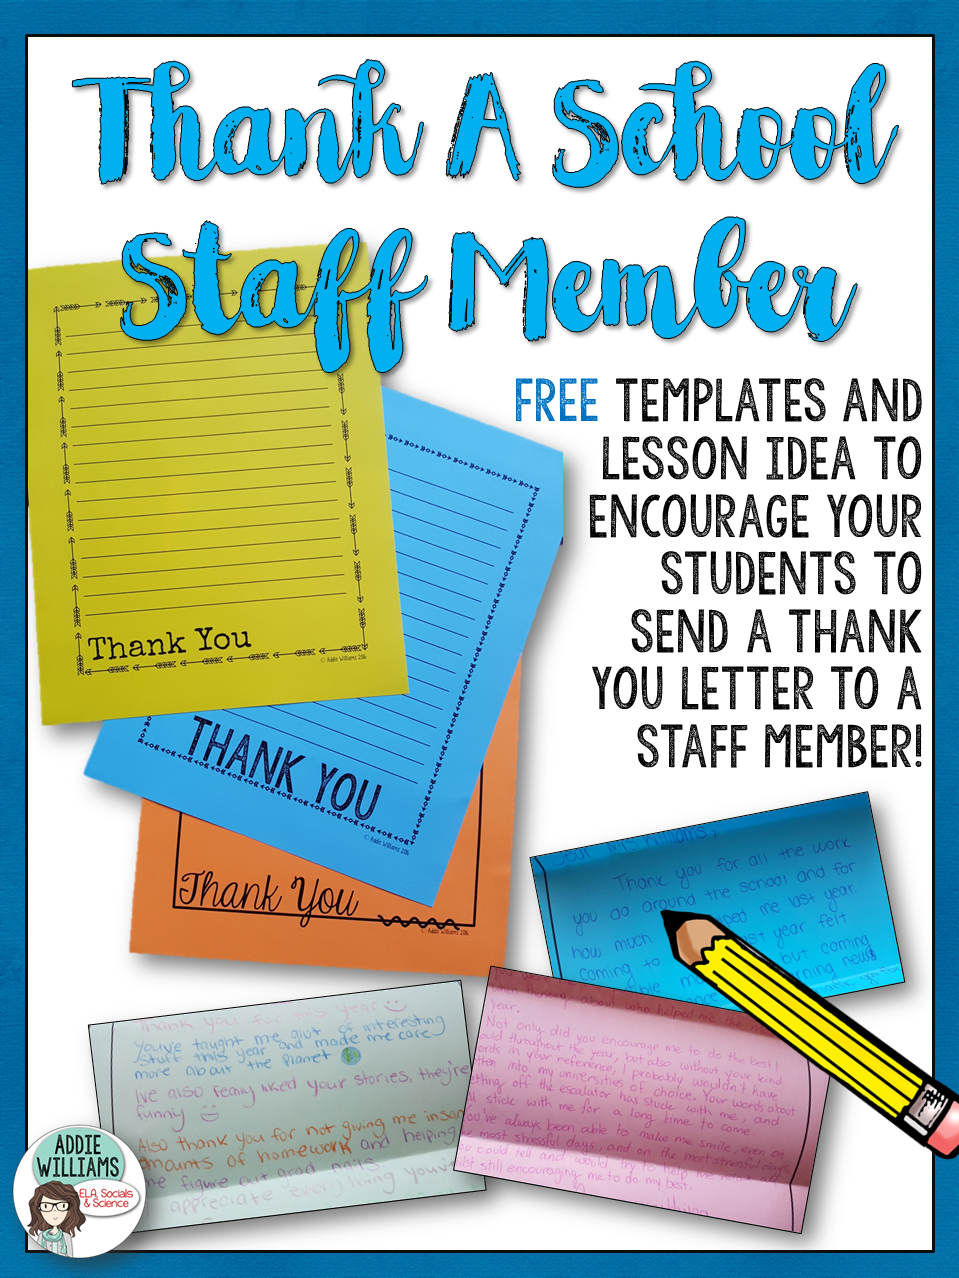 Free thank you letter templates encourage your students to thank a free thank you letter templates encourage your students to thank a staff member itll make their day spiritdancerdesigns Gallery